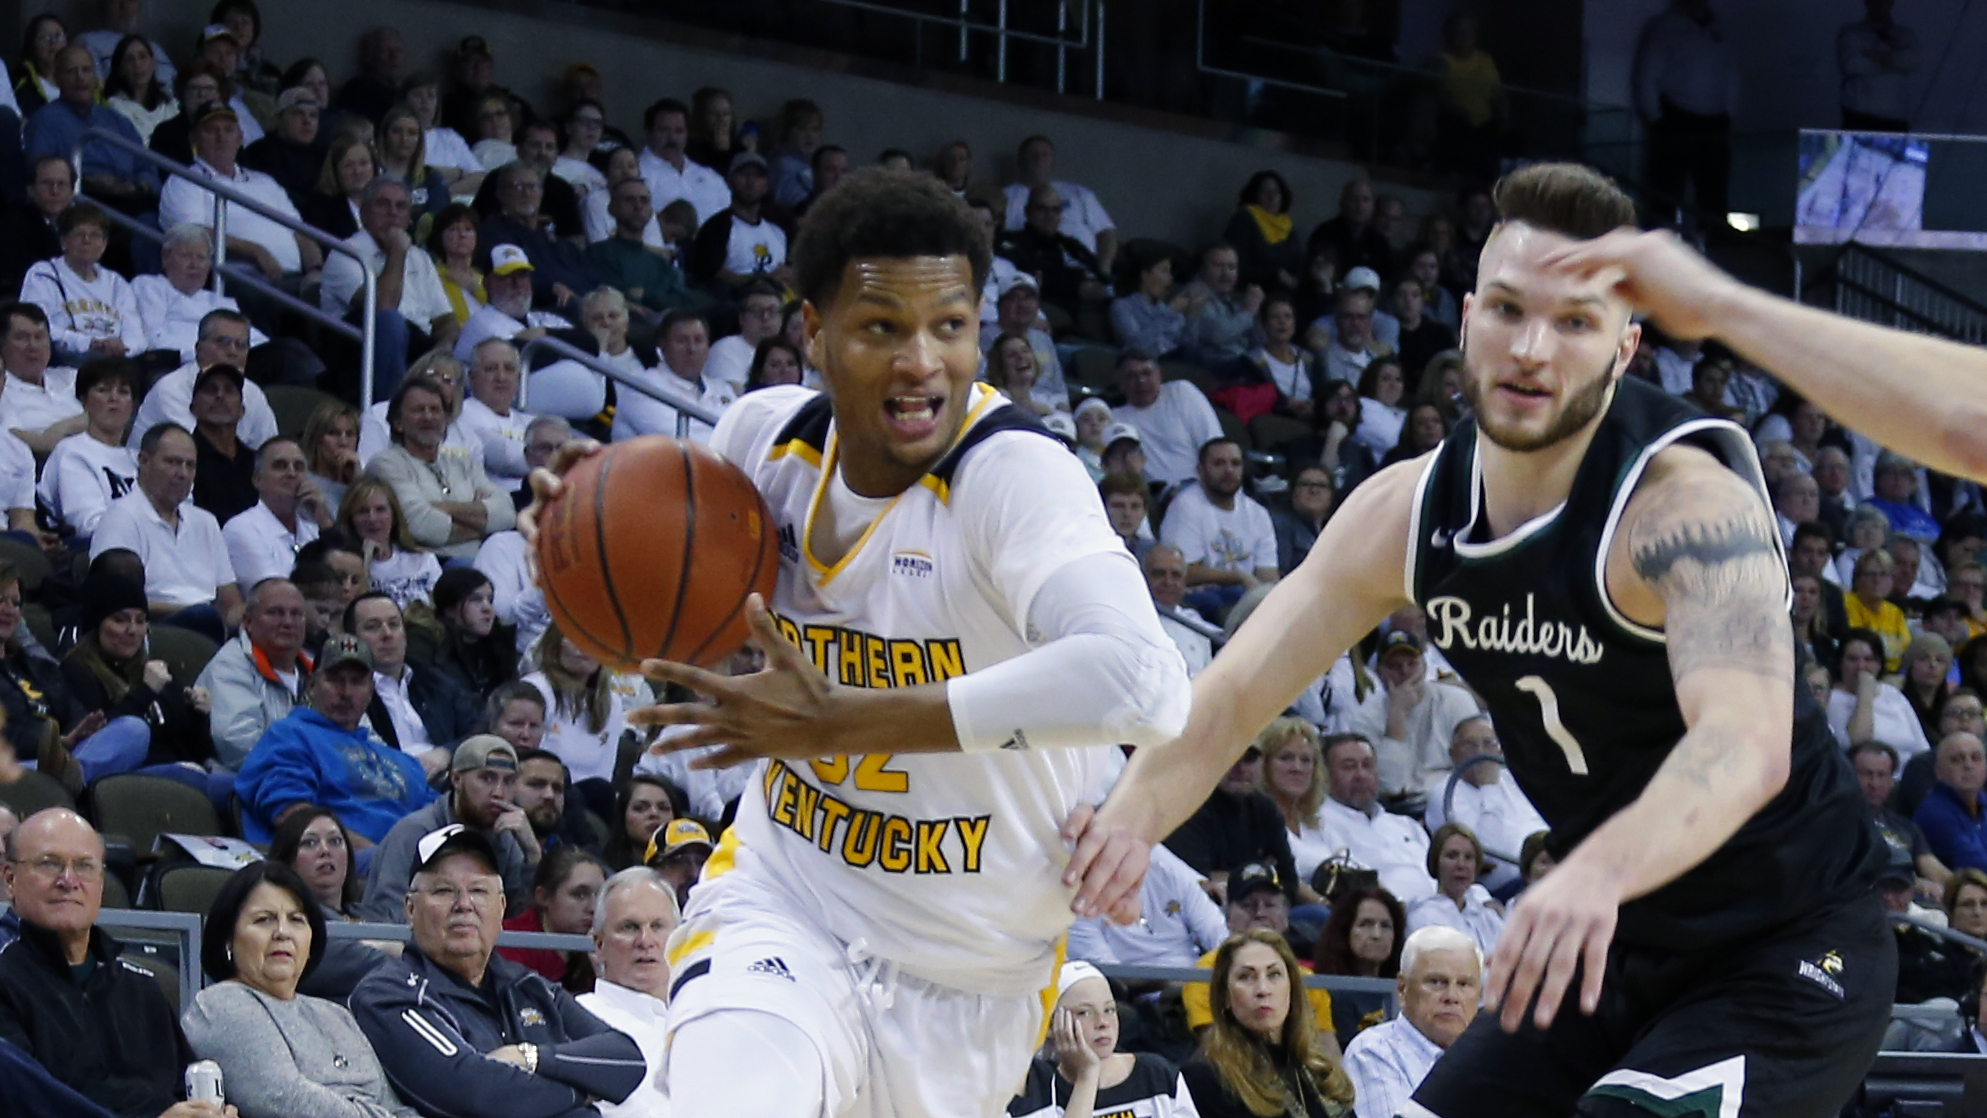 Cleveland Basketball Team >> Horizon League Road Contest With Cleveland State Next Up For